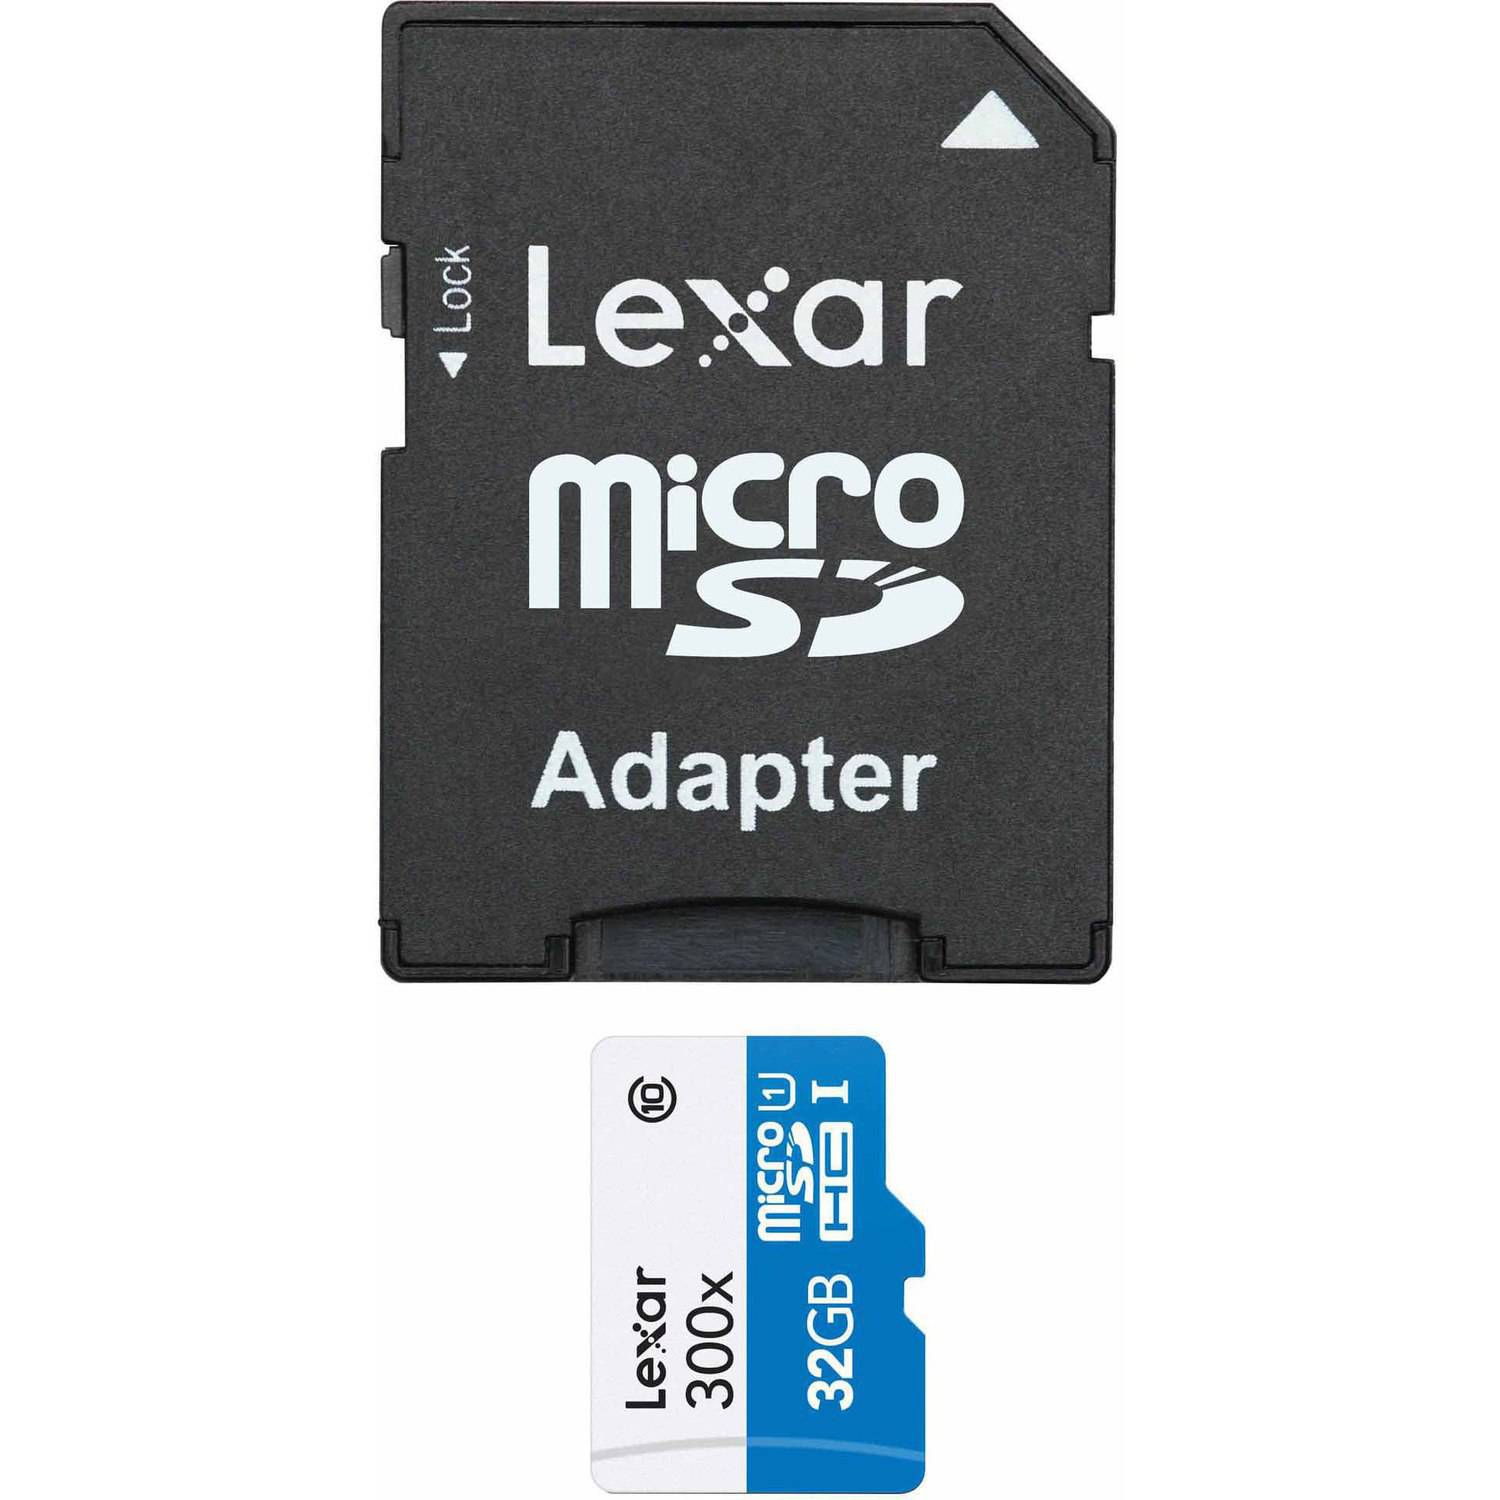 Lexar 32GB High-Performance microSDHC 300x Memory Card, 2-Pack